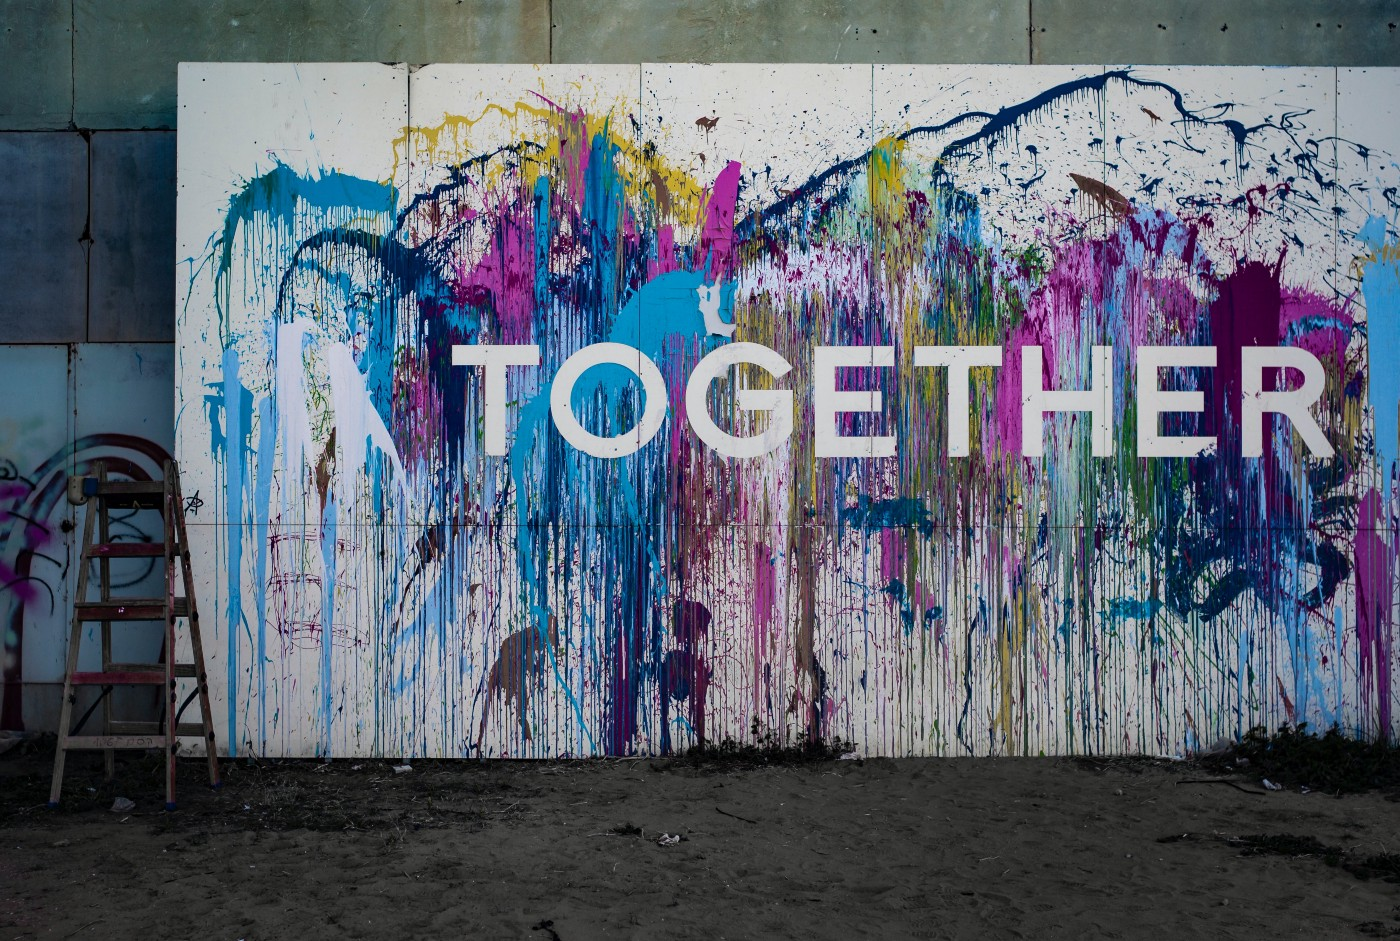 Pale blue, deep indigo, yellow and magenta paint are splashed onto a large white board, with the word 'TOGETHER' on it.